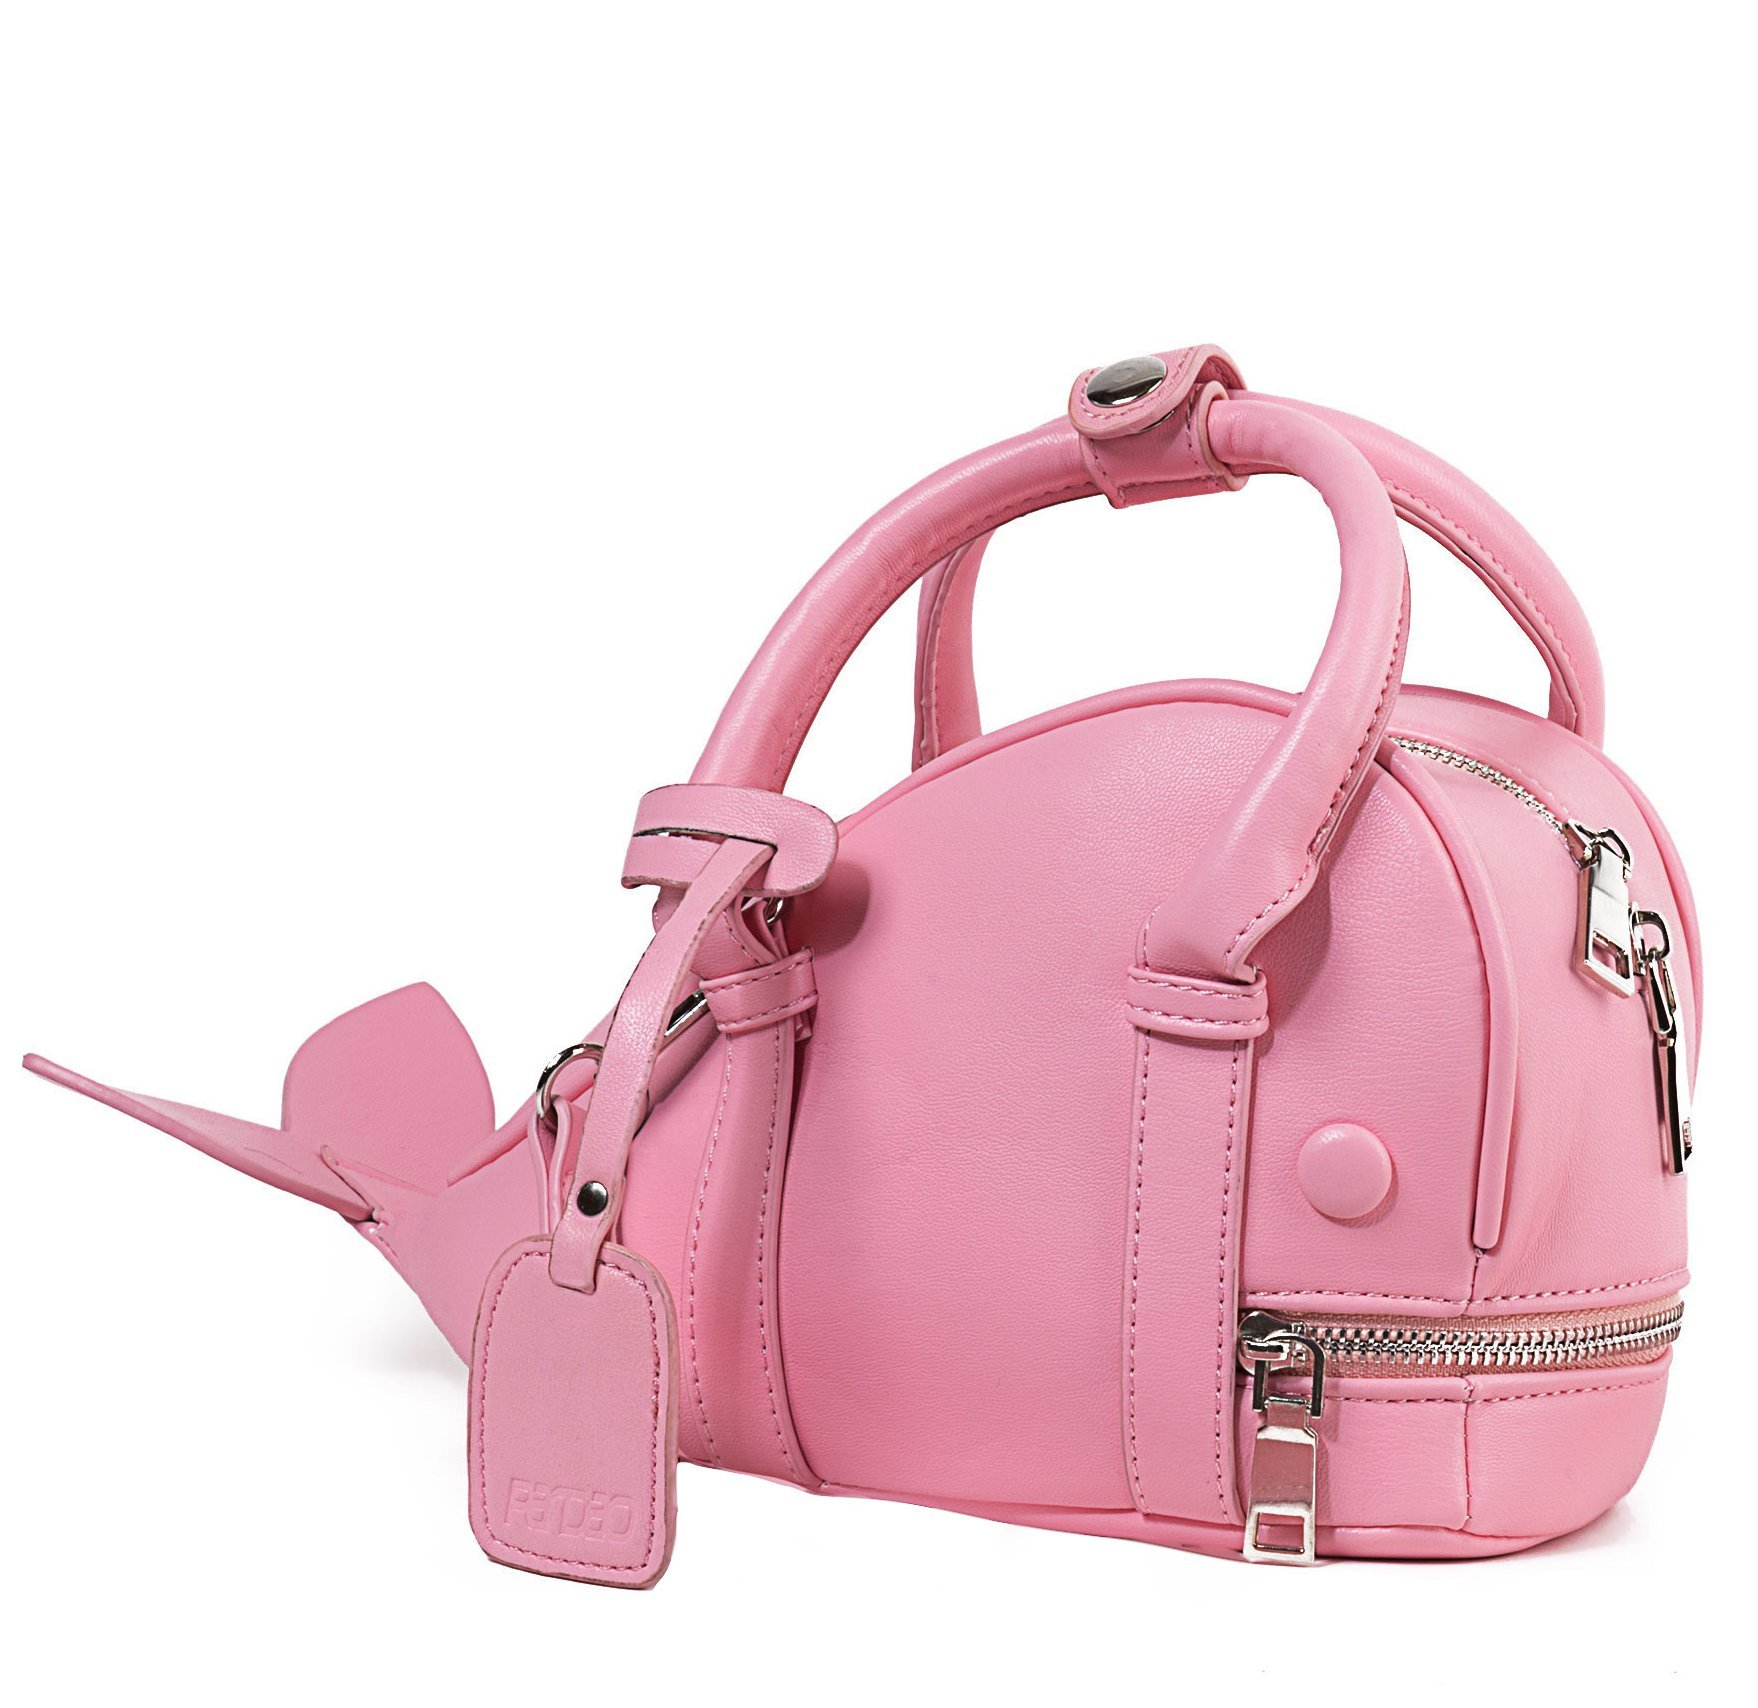 Mini Pink Whale Handbag for Little Preschool Girls Age 5 to 9 Years Old - A Cute Animal Messenger Crossbody Purse for Kids